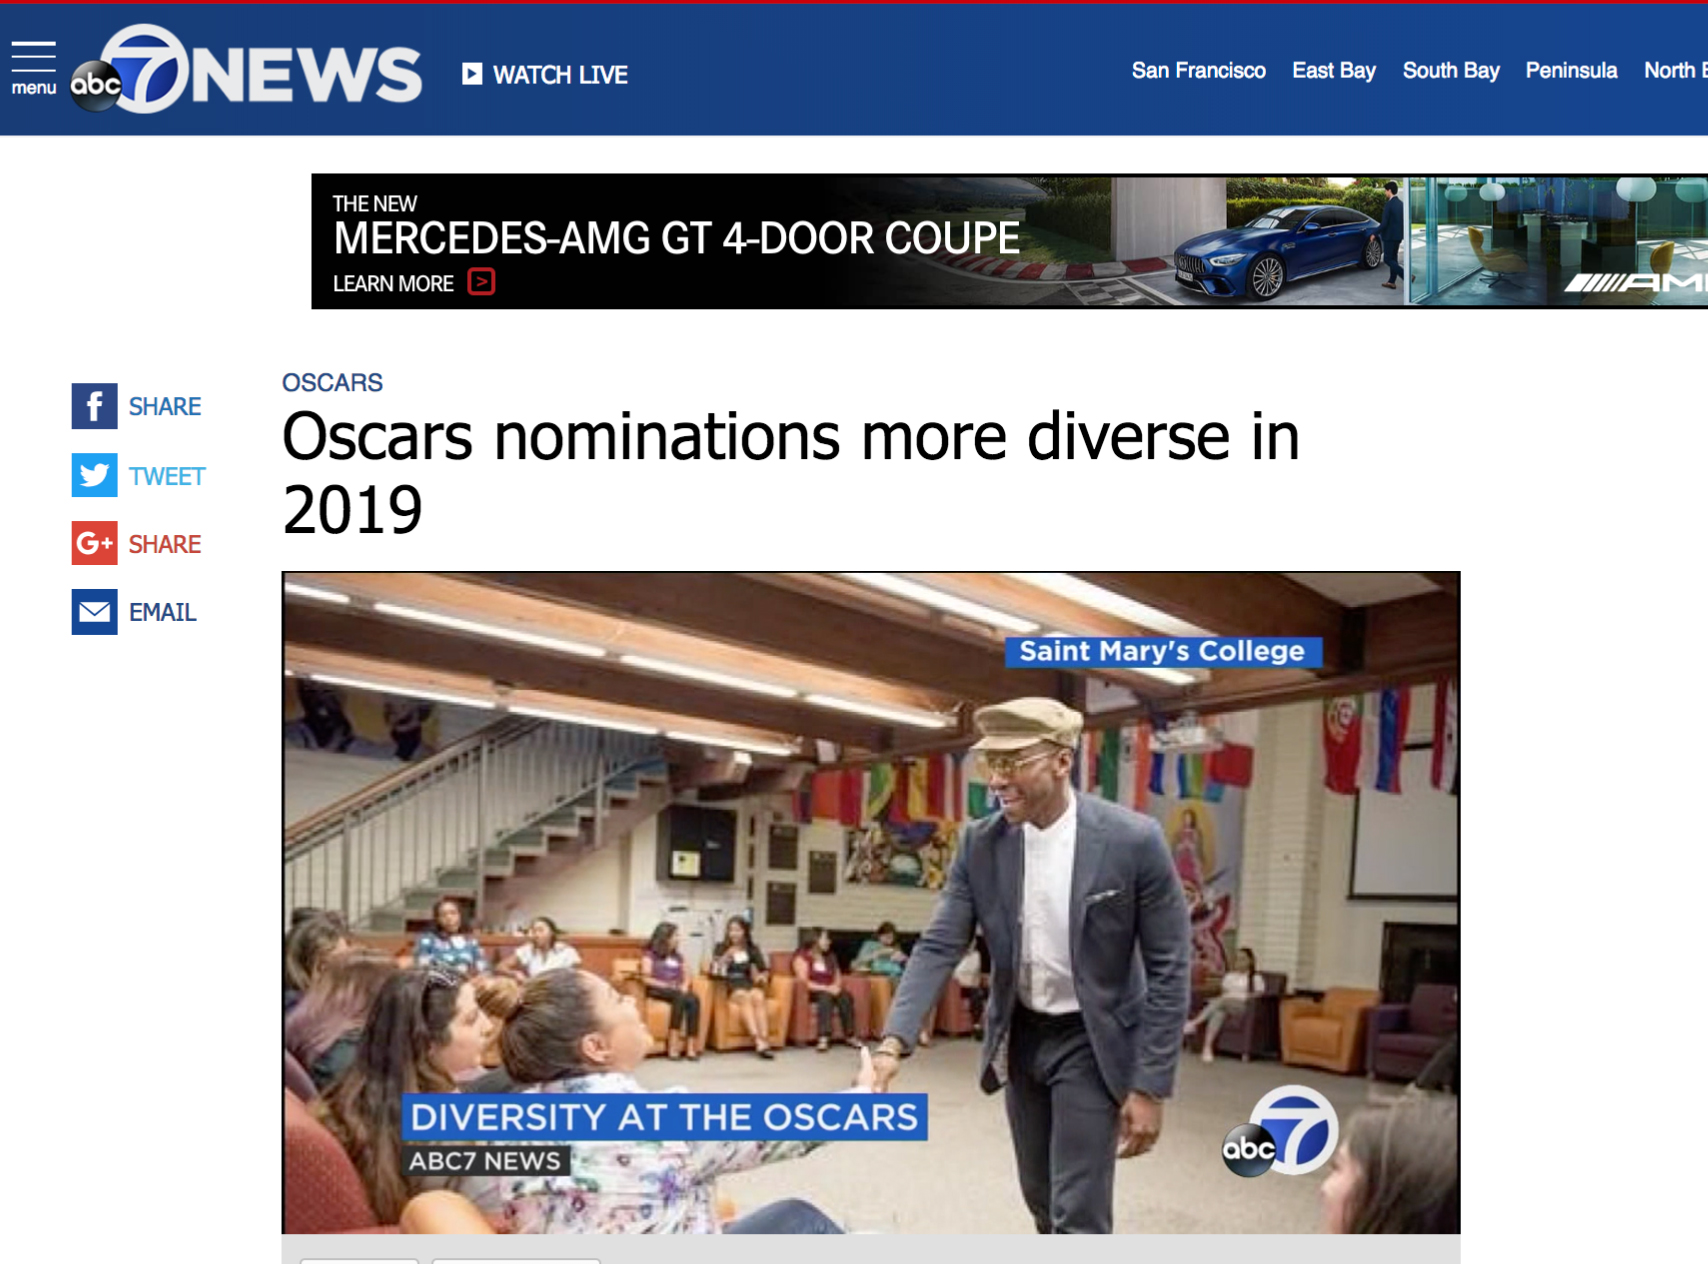 ABC7-KGO-TV news story about Mahershala Ali '96 being nominated for his second Oscar award in three years, and increasing  diversity in the films nominated for Academy Awards.